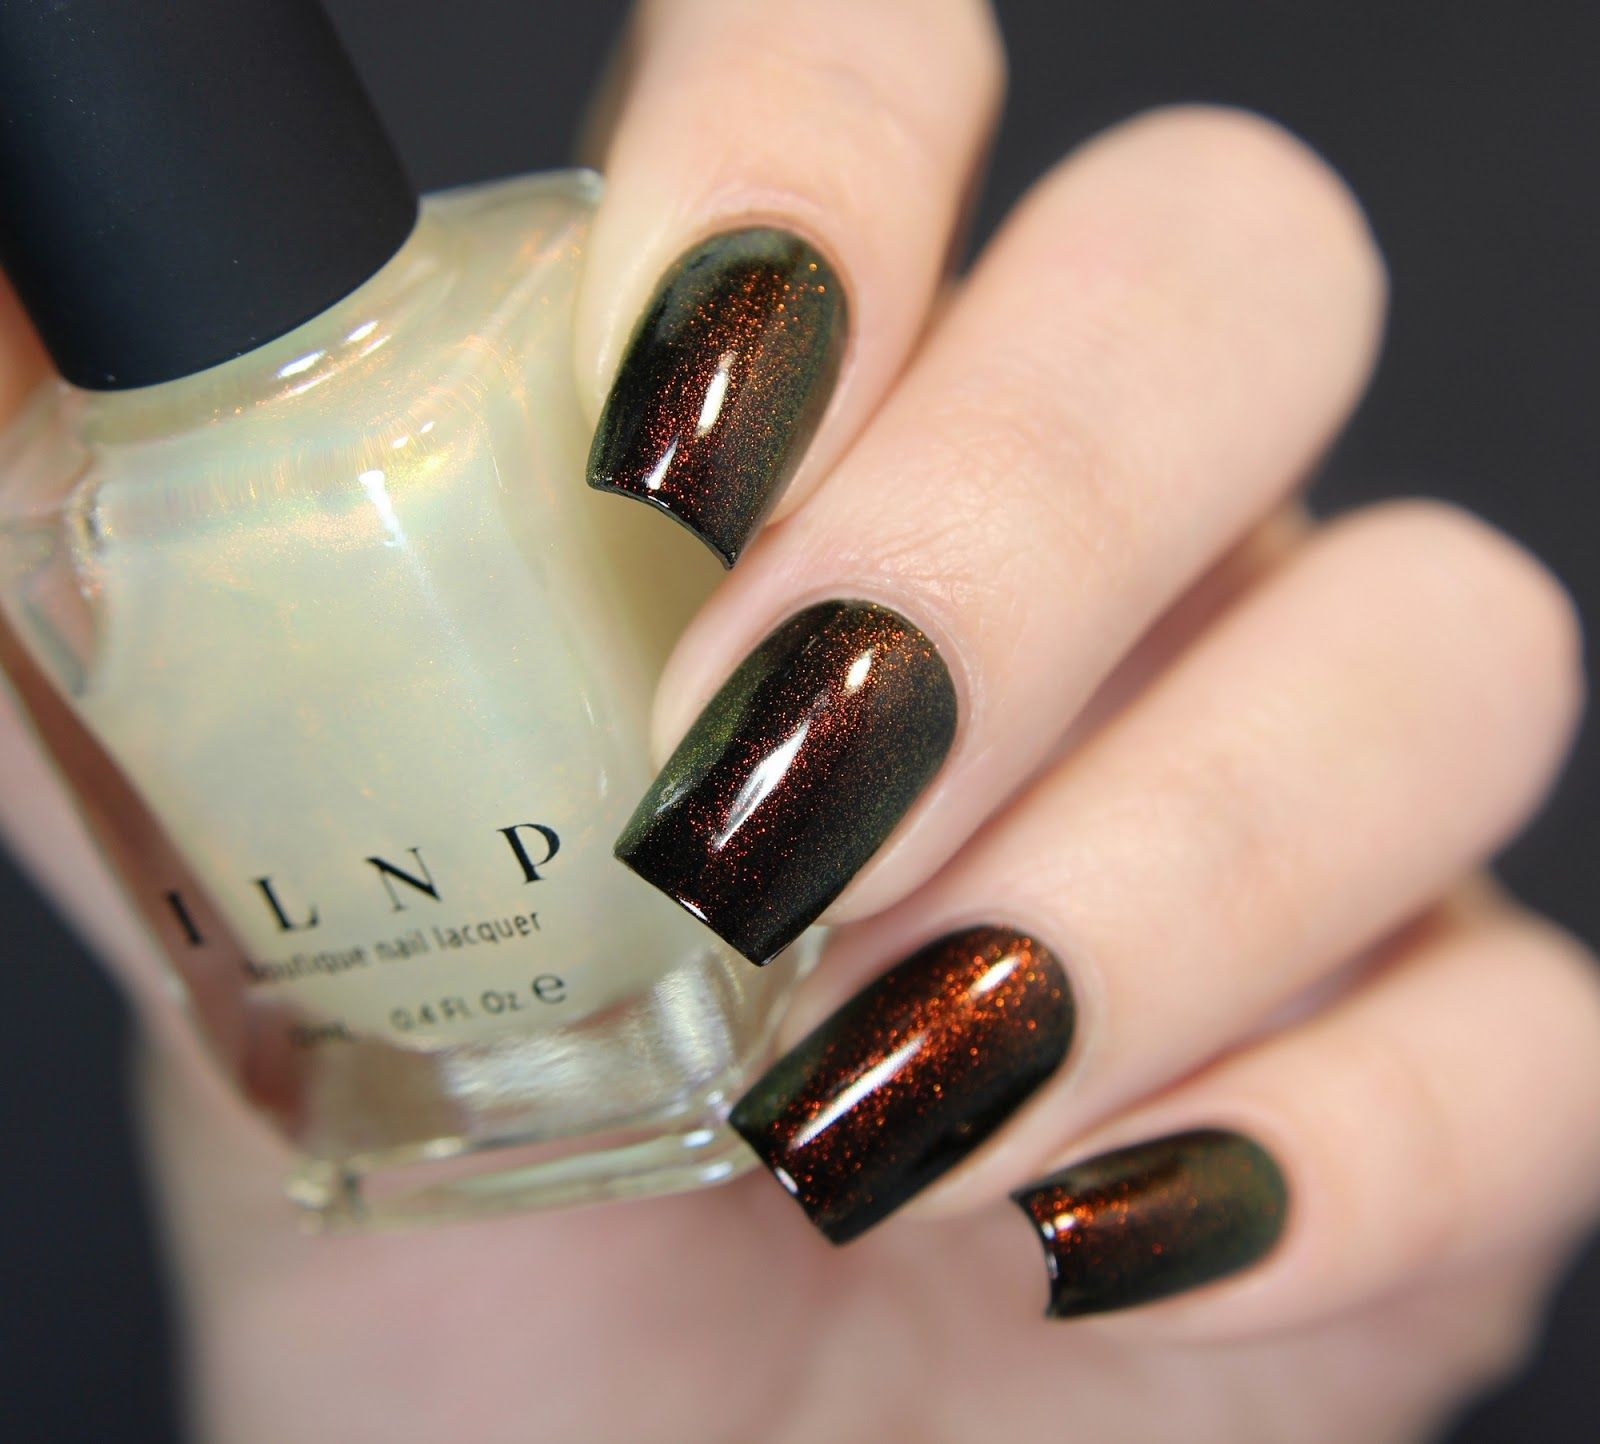 Pin by LuAnn Taylor on Nails | Pinterest | Manicure